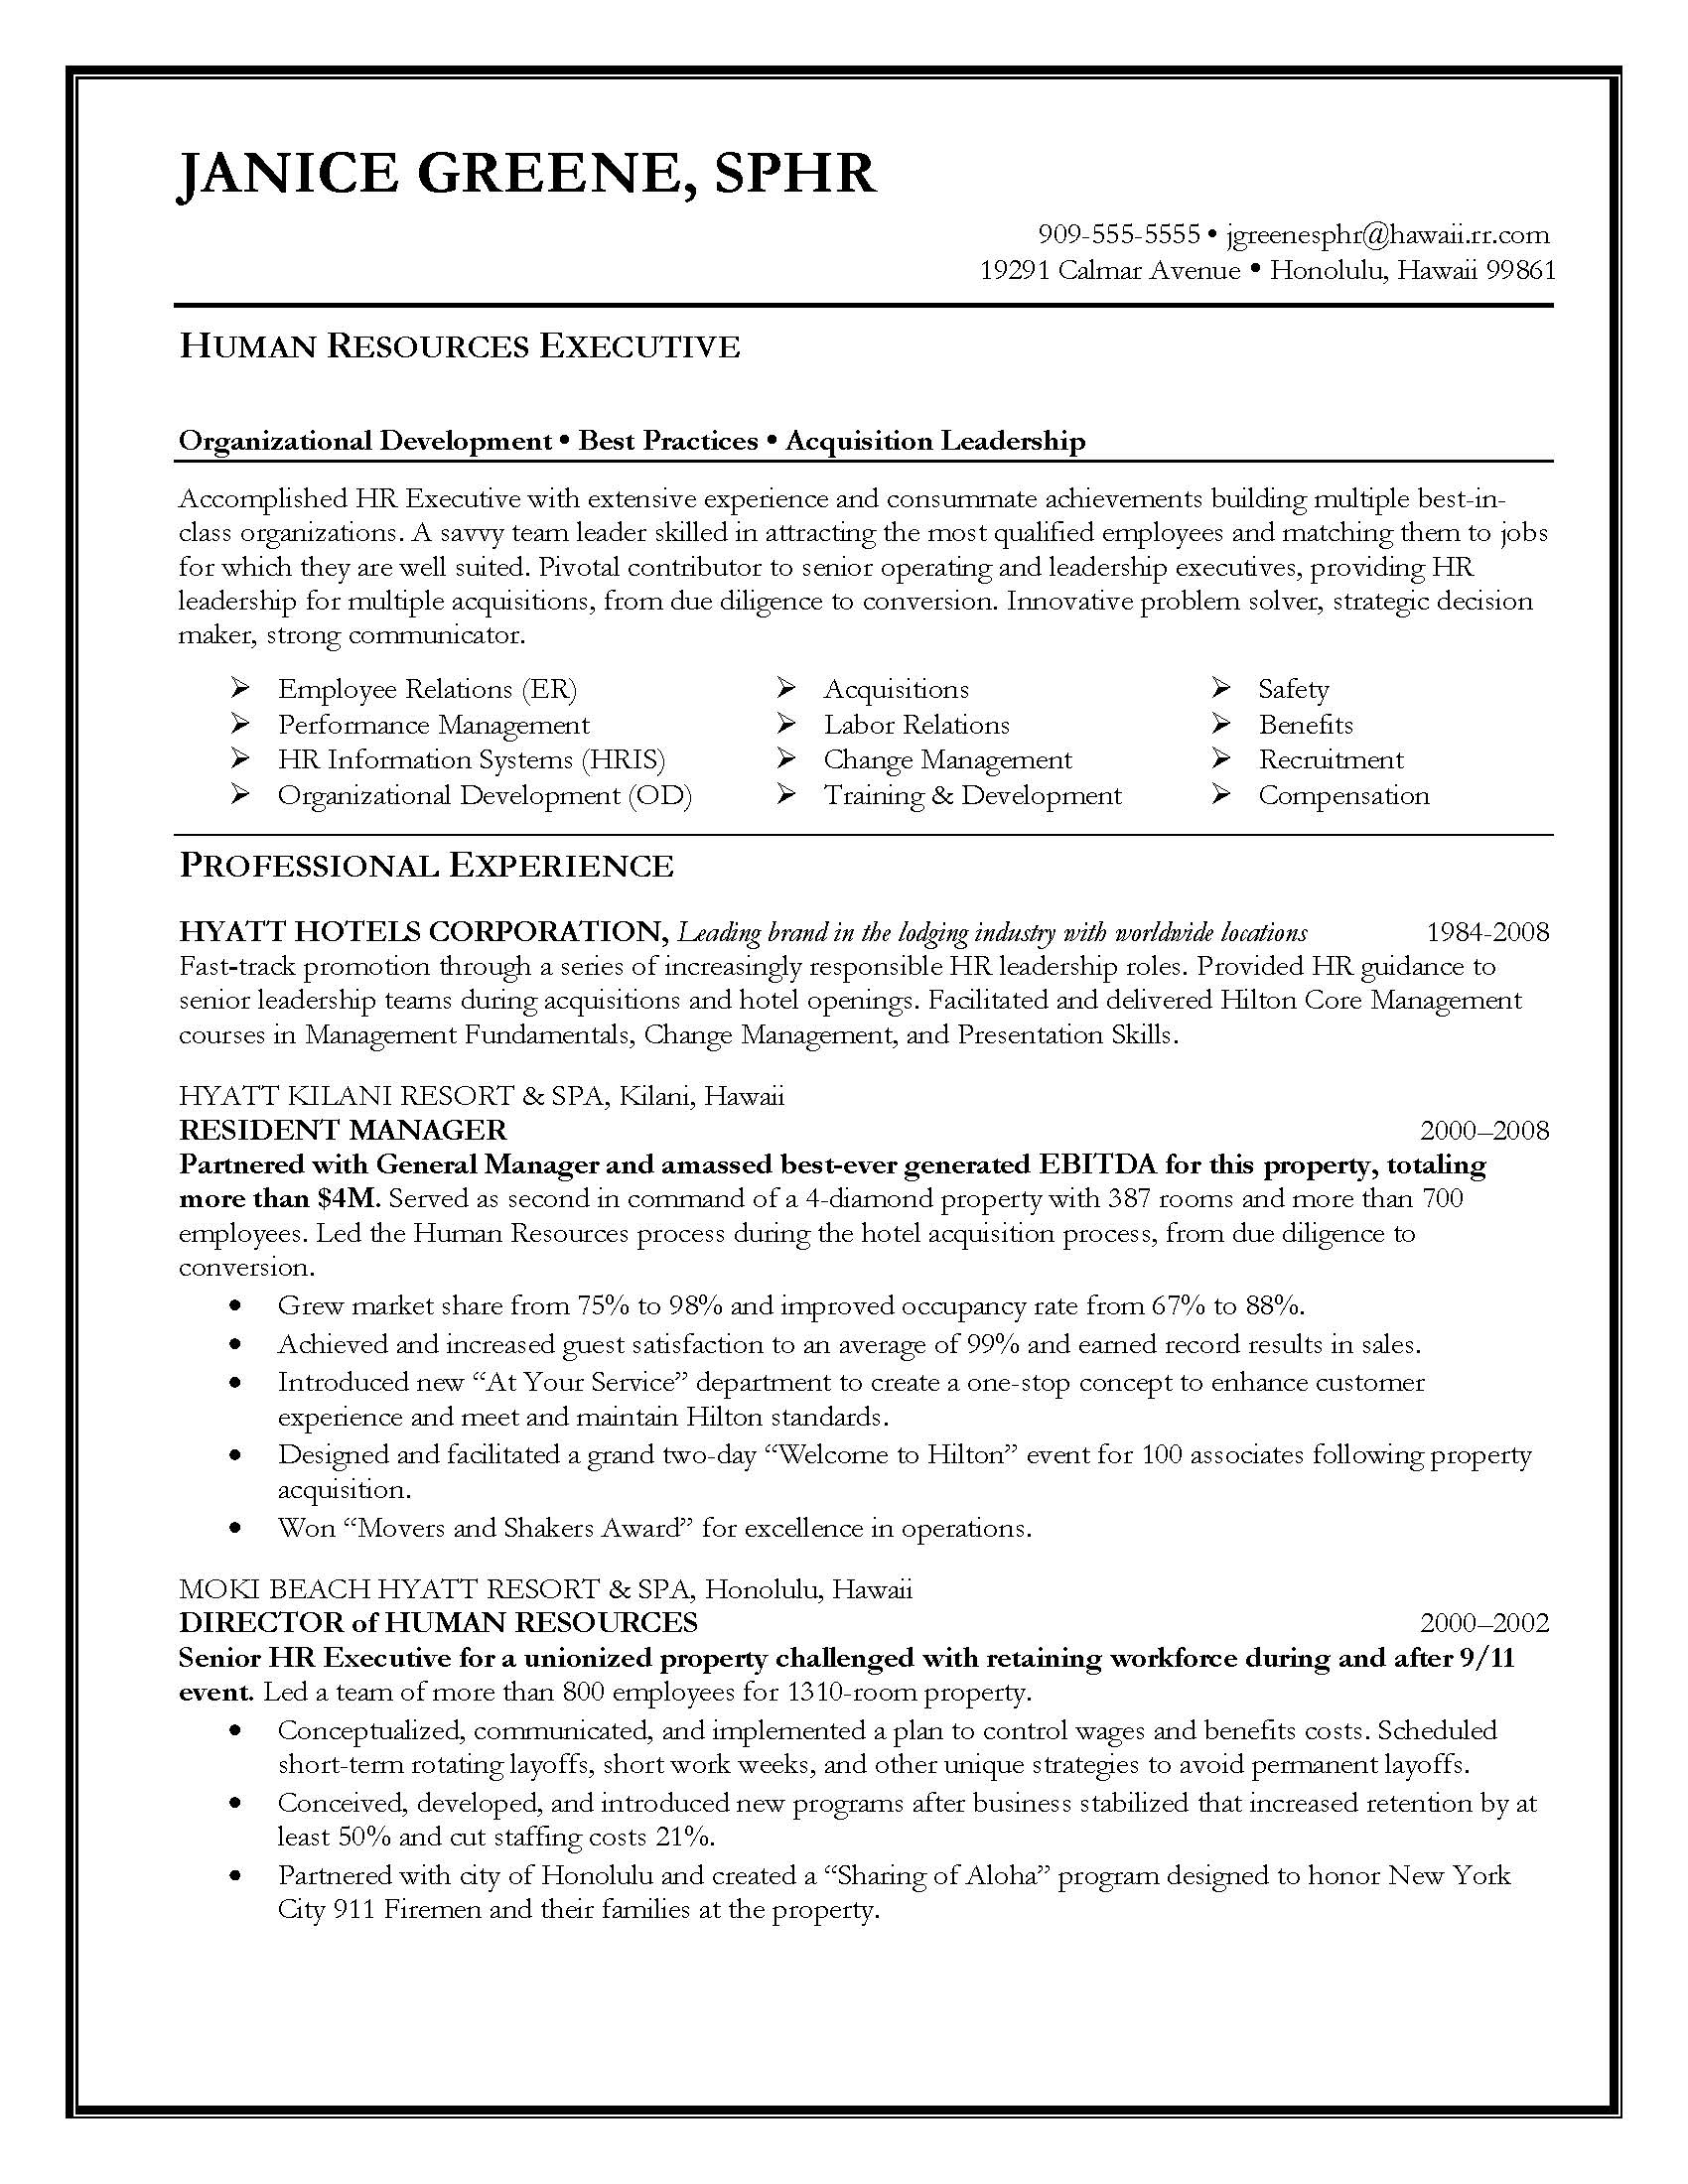 100 cover letter examples for human resources cover letters cover letter resources best job interview cover letter resources madrichimfo Choice Image